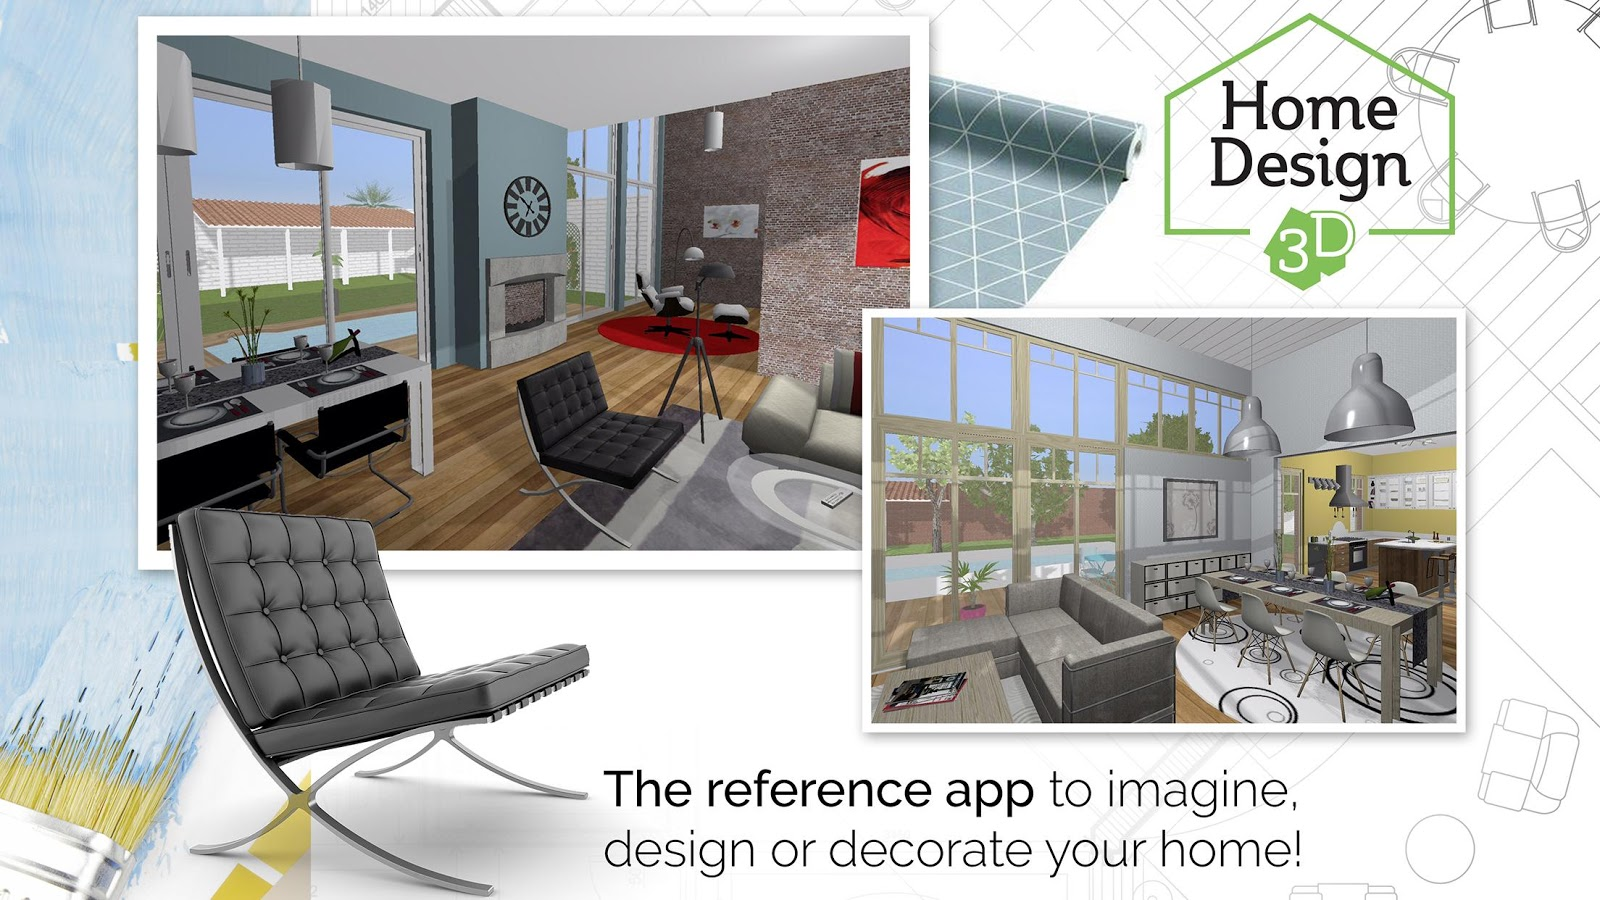 Home design 3d freemium android google play - Decorate a house online ...